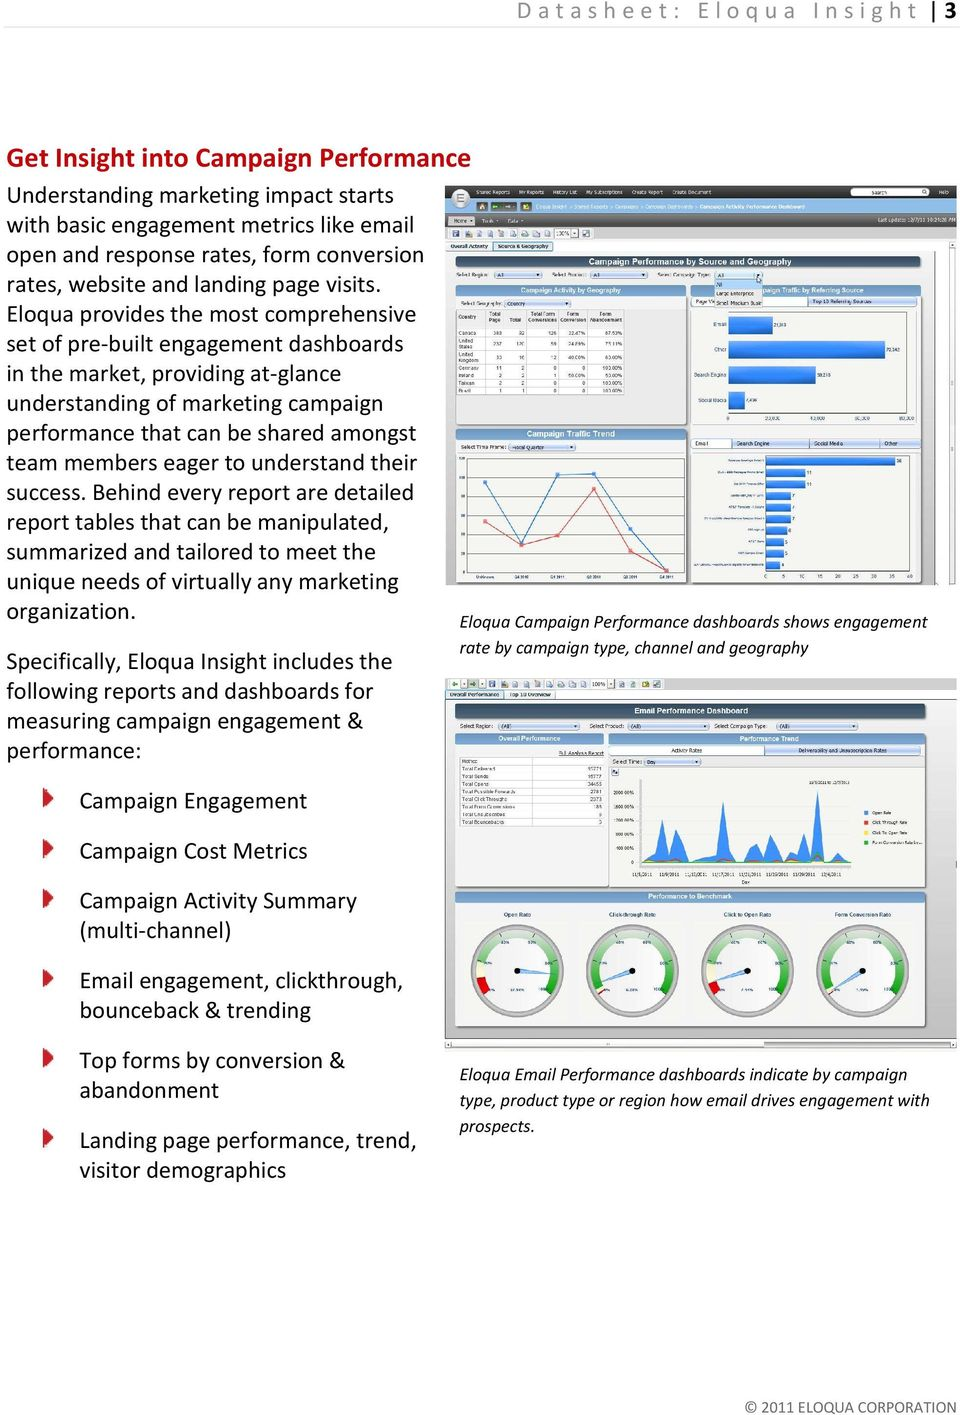 Eloqua provides the most comprehensive set of pre-built engagement dashboards in the market, providing at-glance understanding of marketing campaign performance that can be shared amongst team